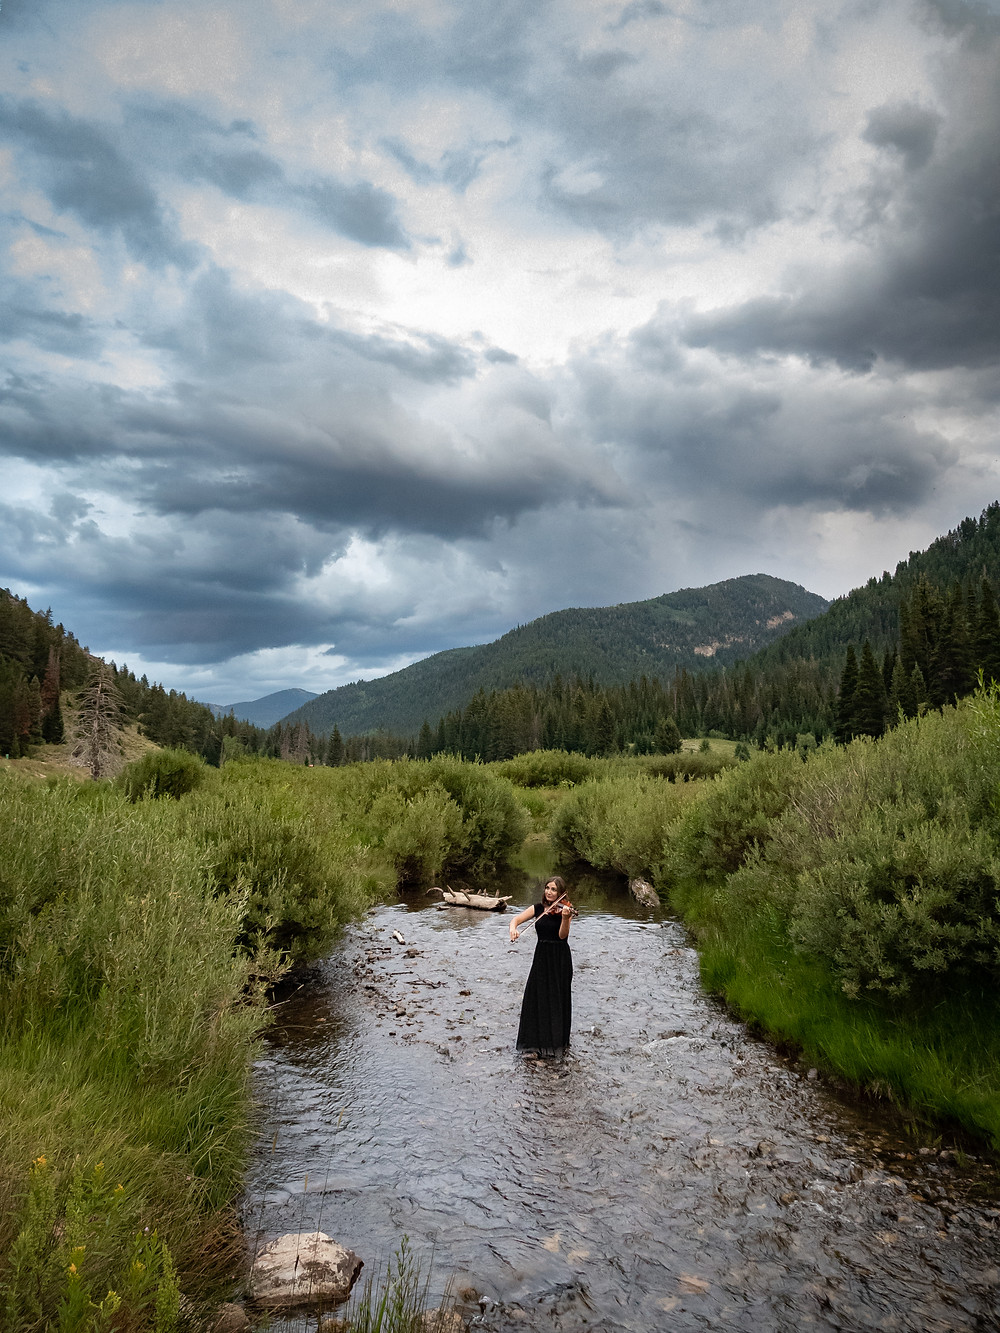 Solo violinist in Utah: Jessica McAllister plays violin while standing in a river